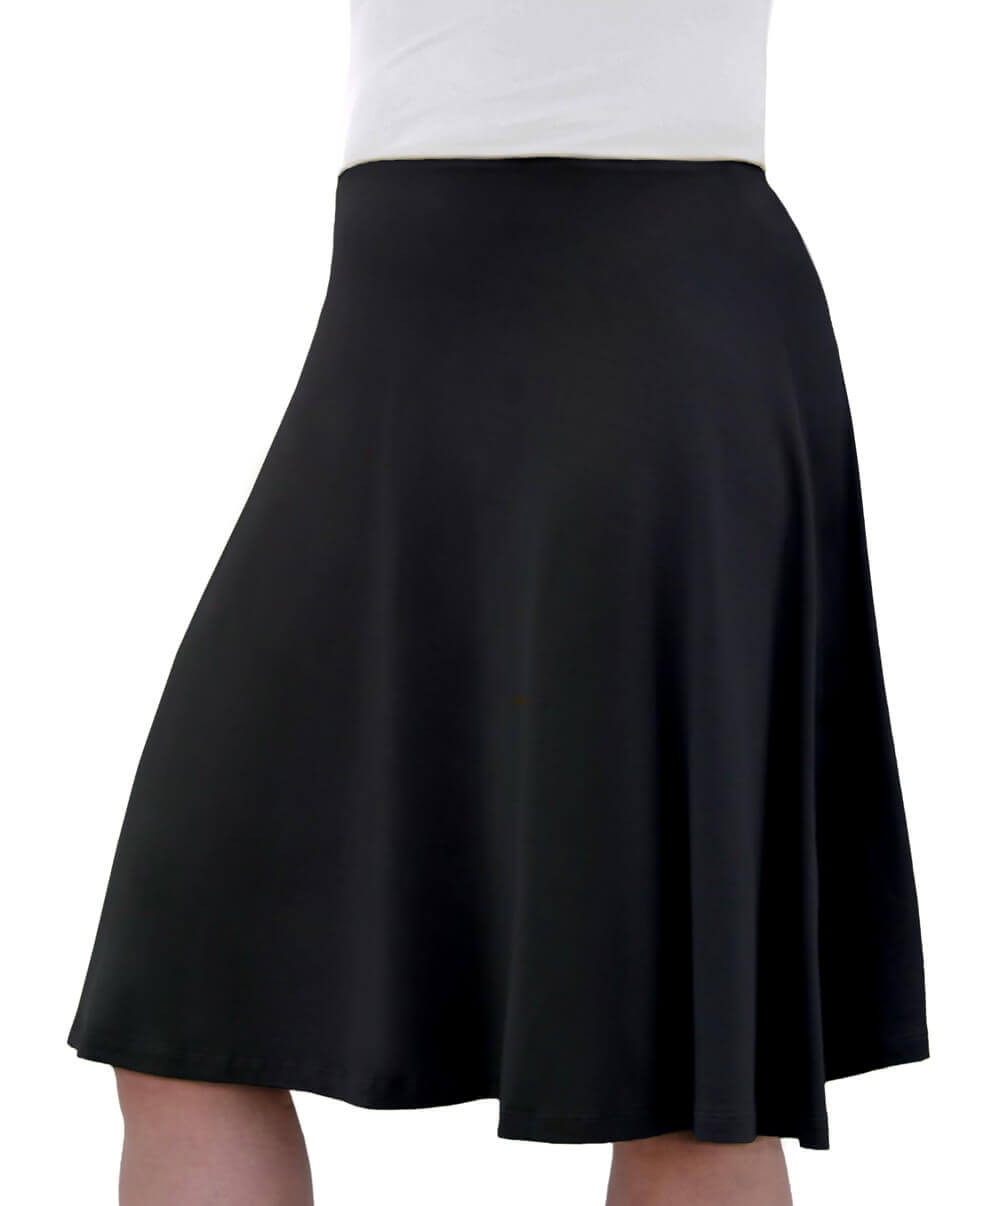 Knee Length Skater Skirt with Full A-line Cut for Women